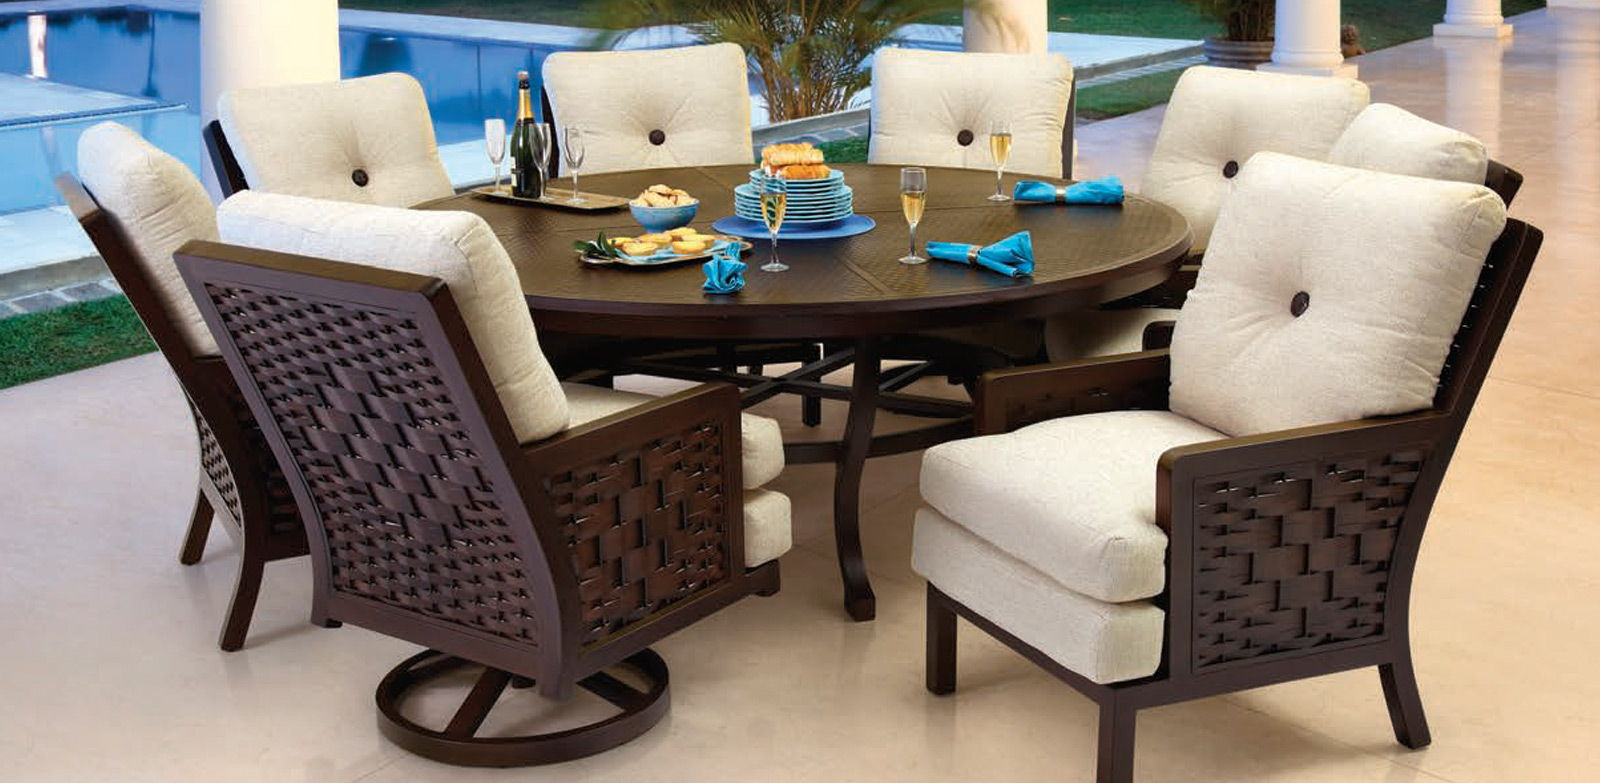 Spanish bay collection in costa rica costa rica for Outdoor furniture spain